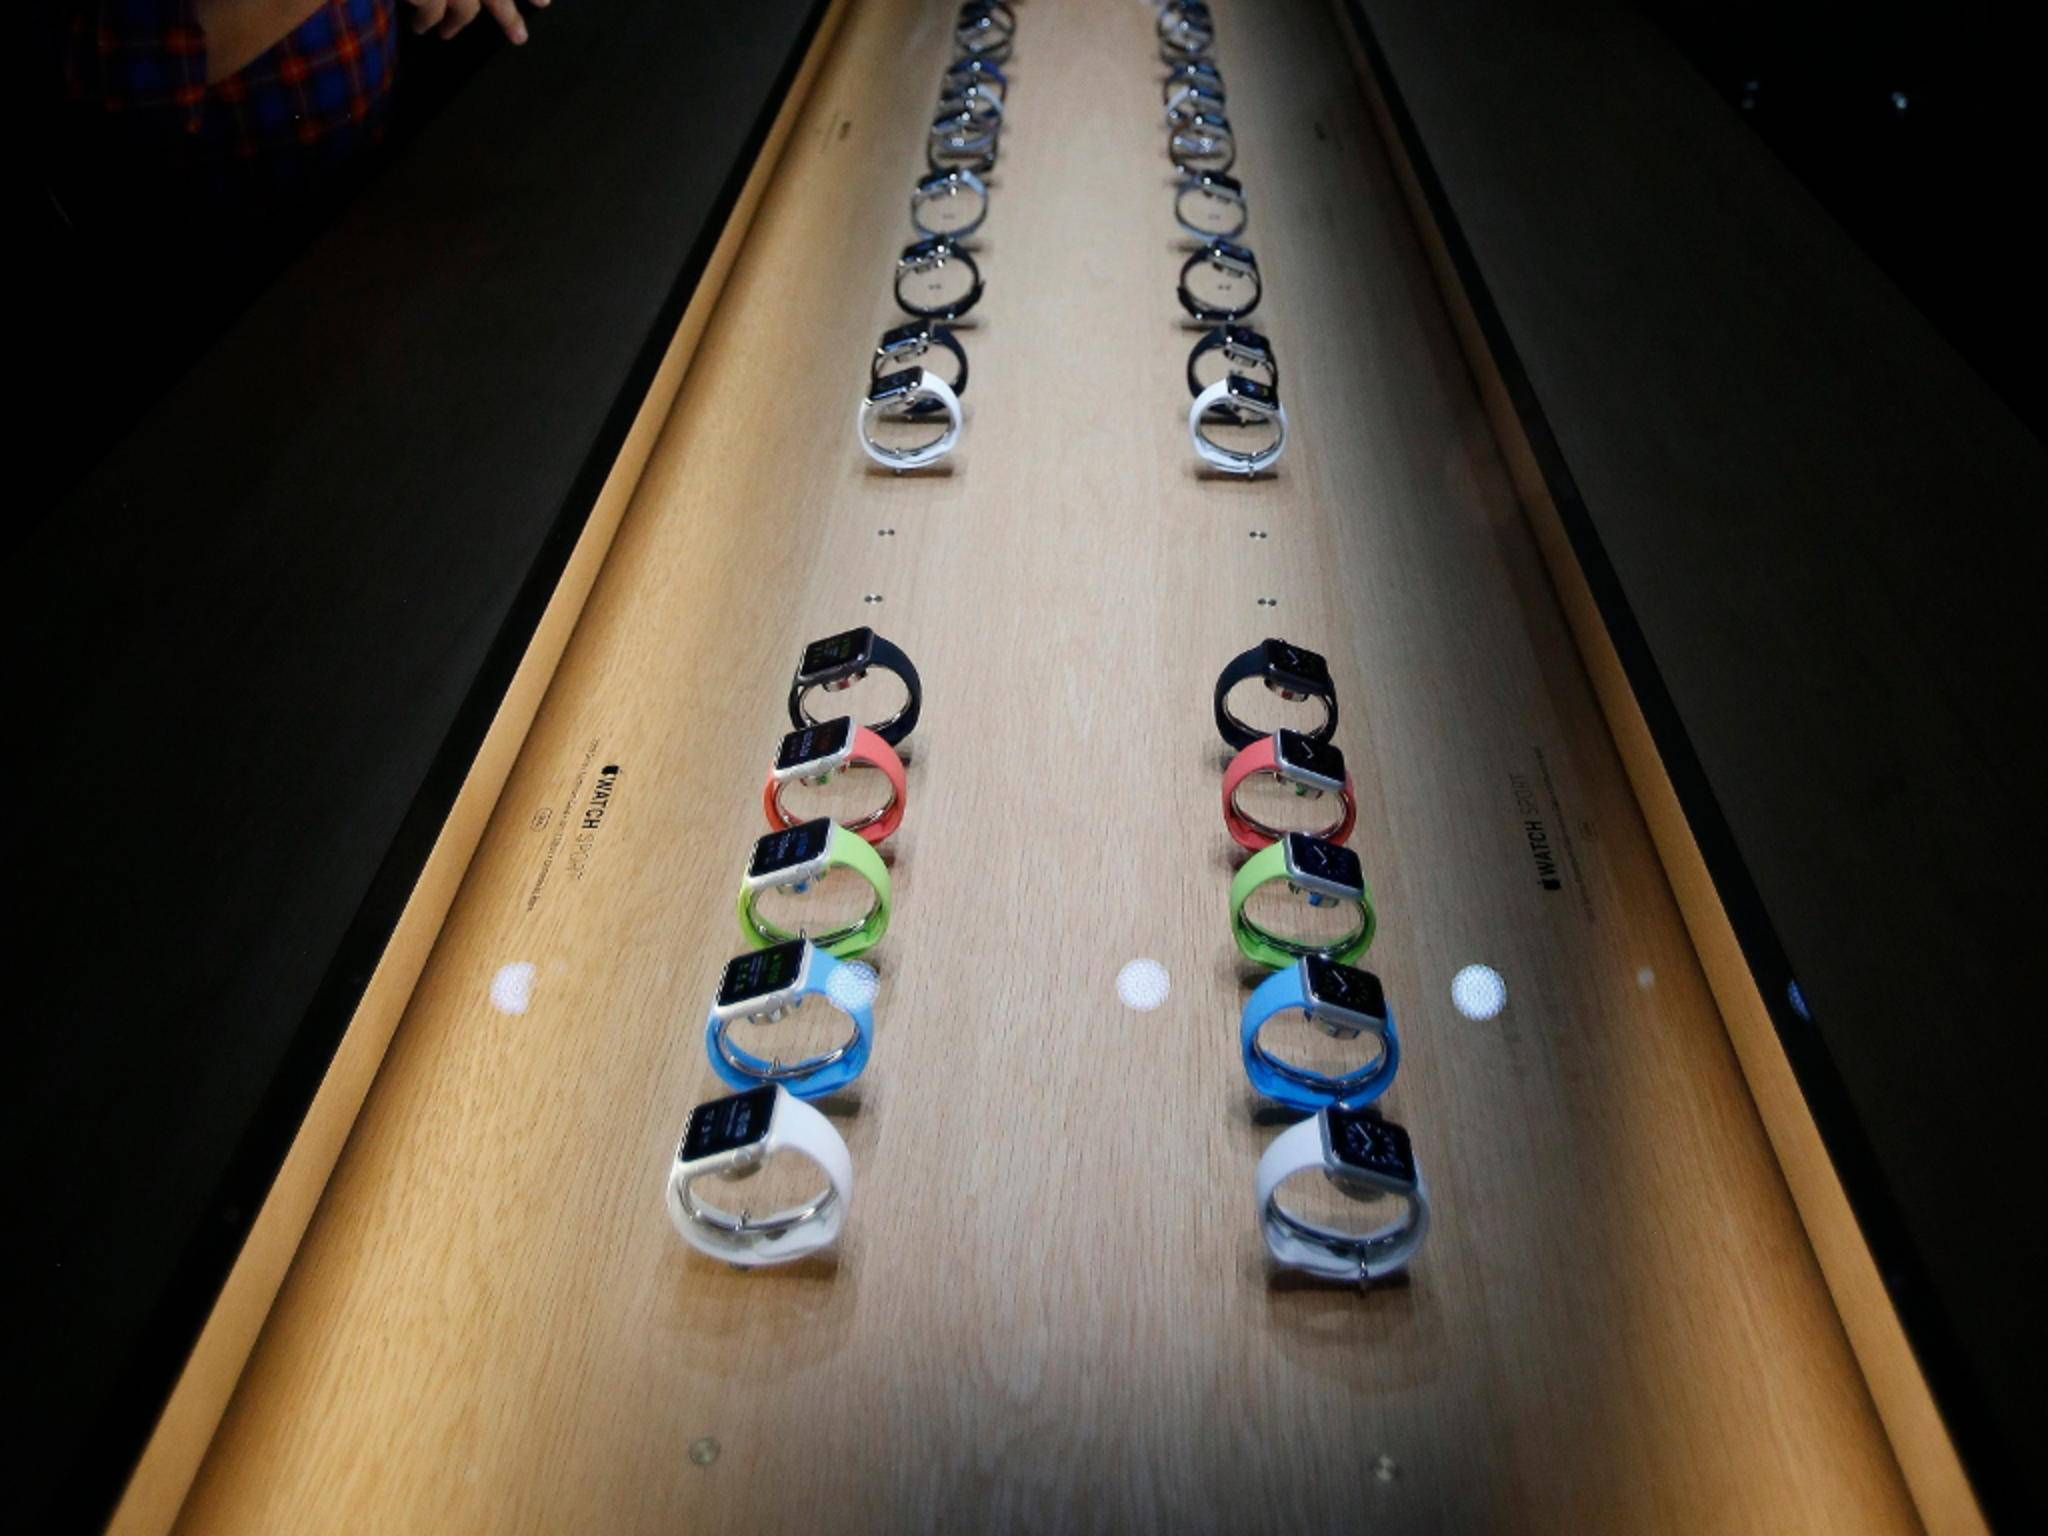 Die Apple Watch soll den Smartwatch-Markt revolutionieren.